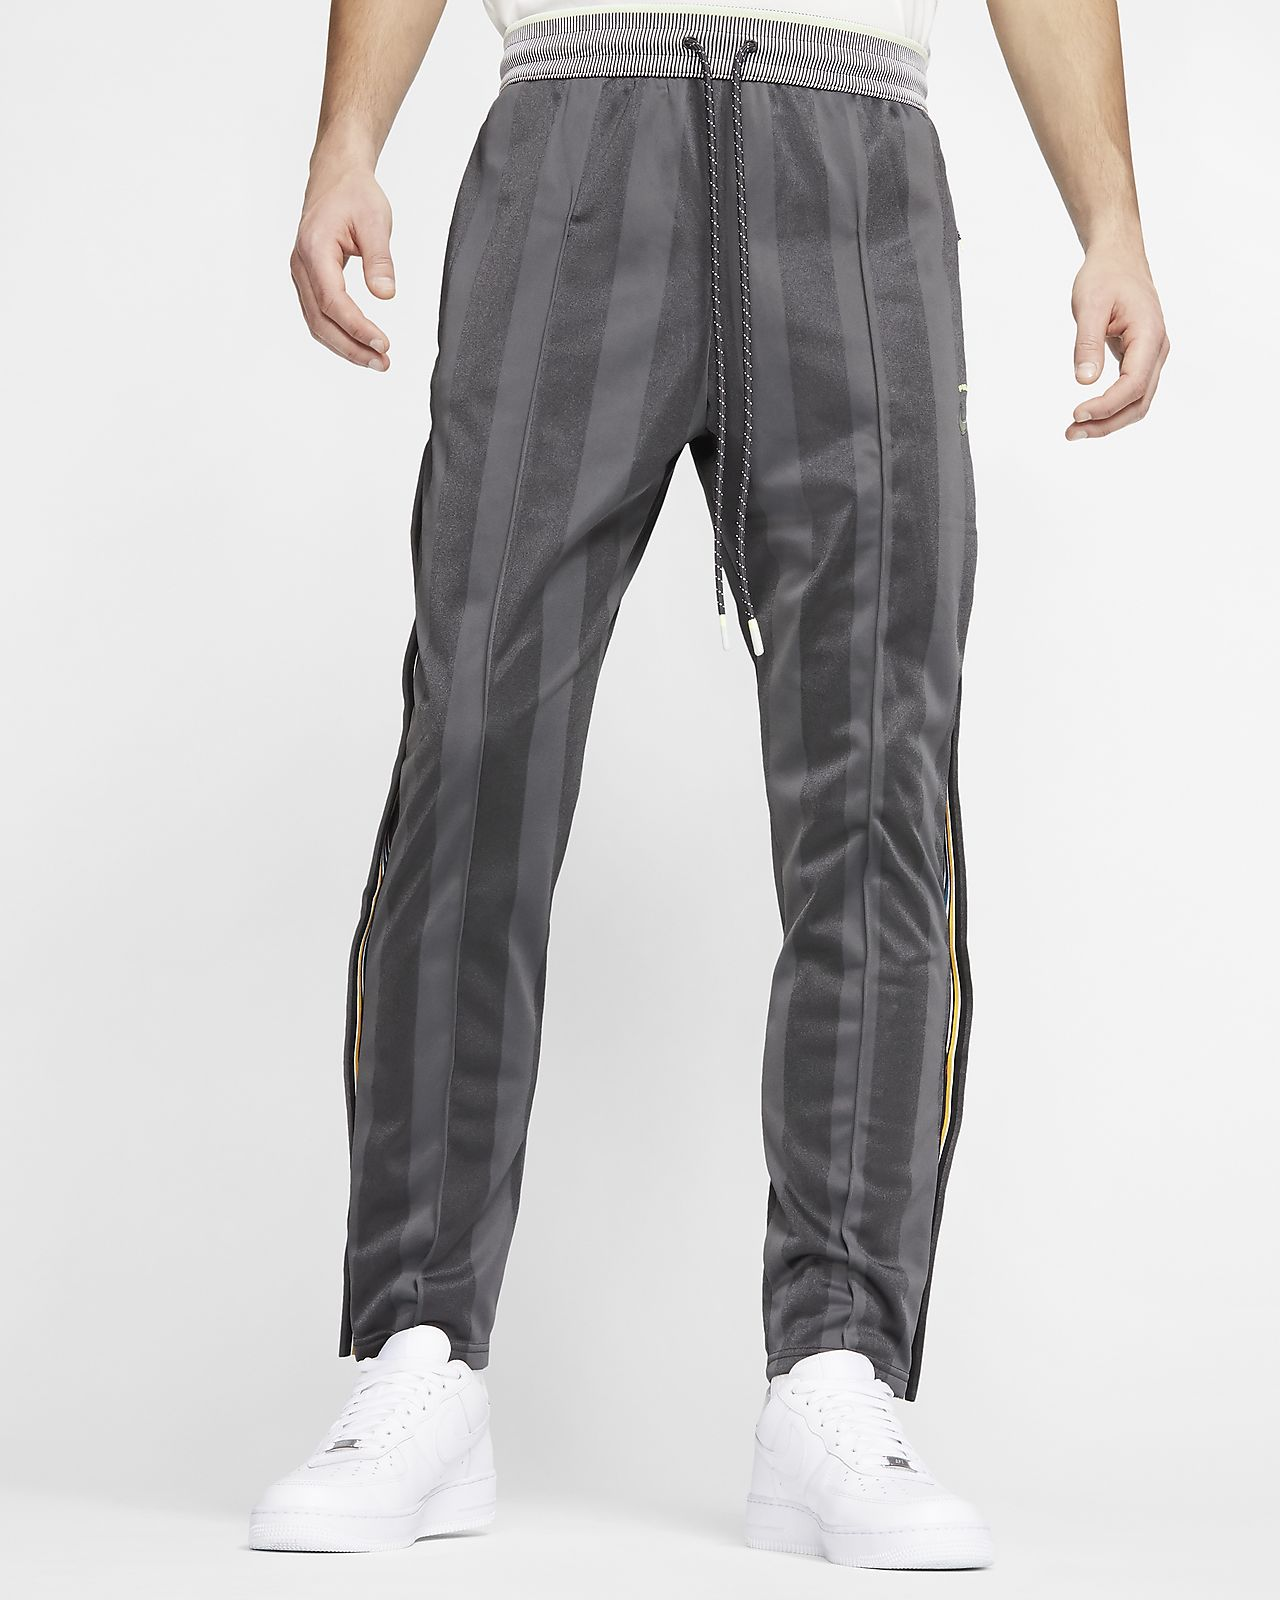 Nike x Pigalle Pantalons separables - Home